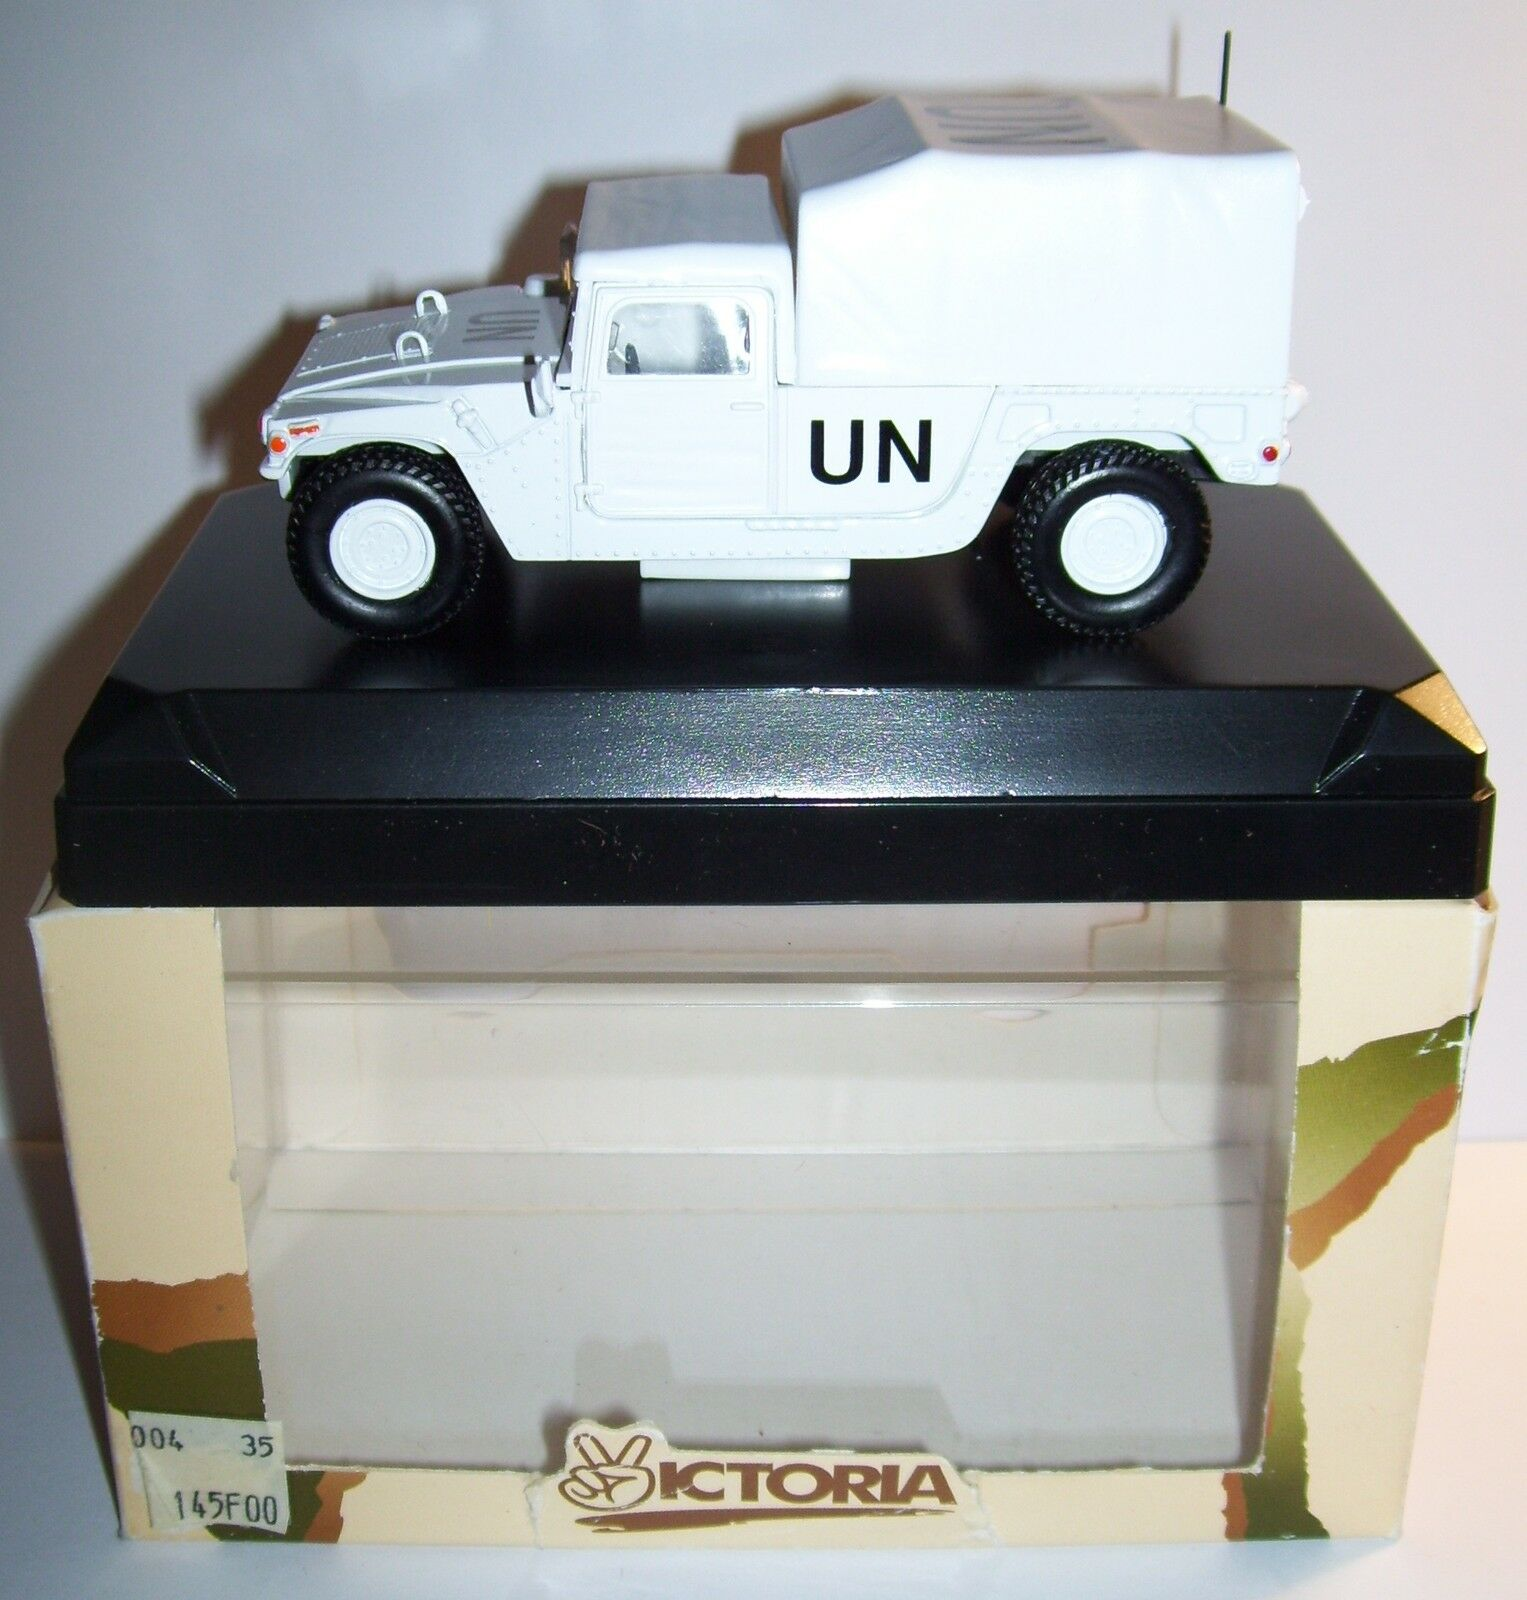 RARO VICTORIA BY VELOCIDAD HUMMER UN UNITED NATIONS UNIDAS 1 43 REF R004 EN BOX